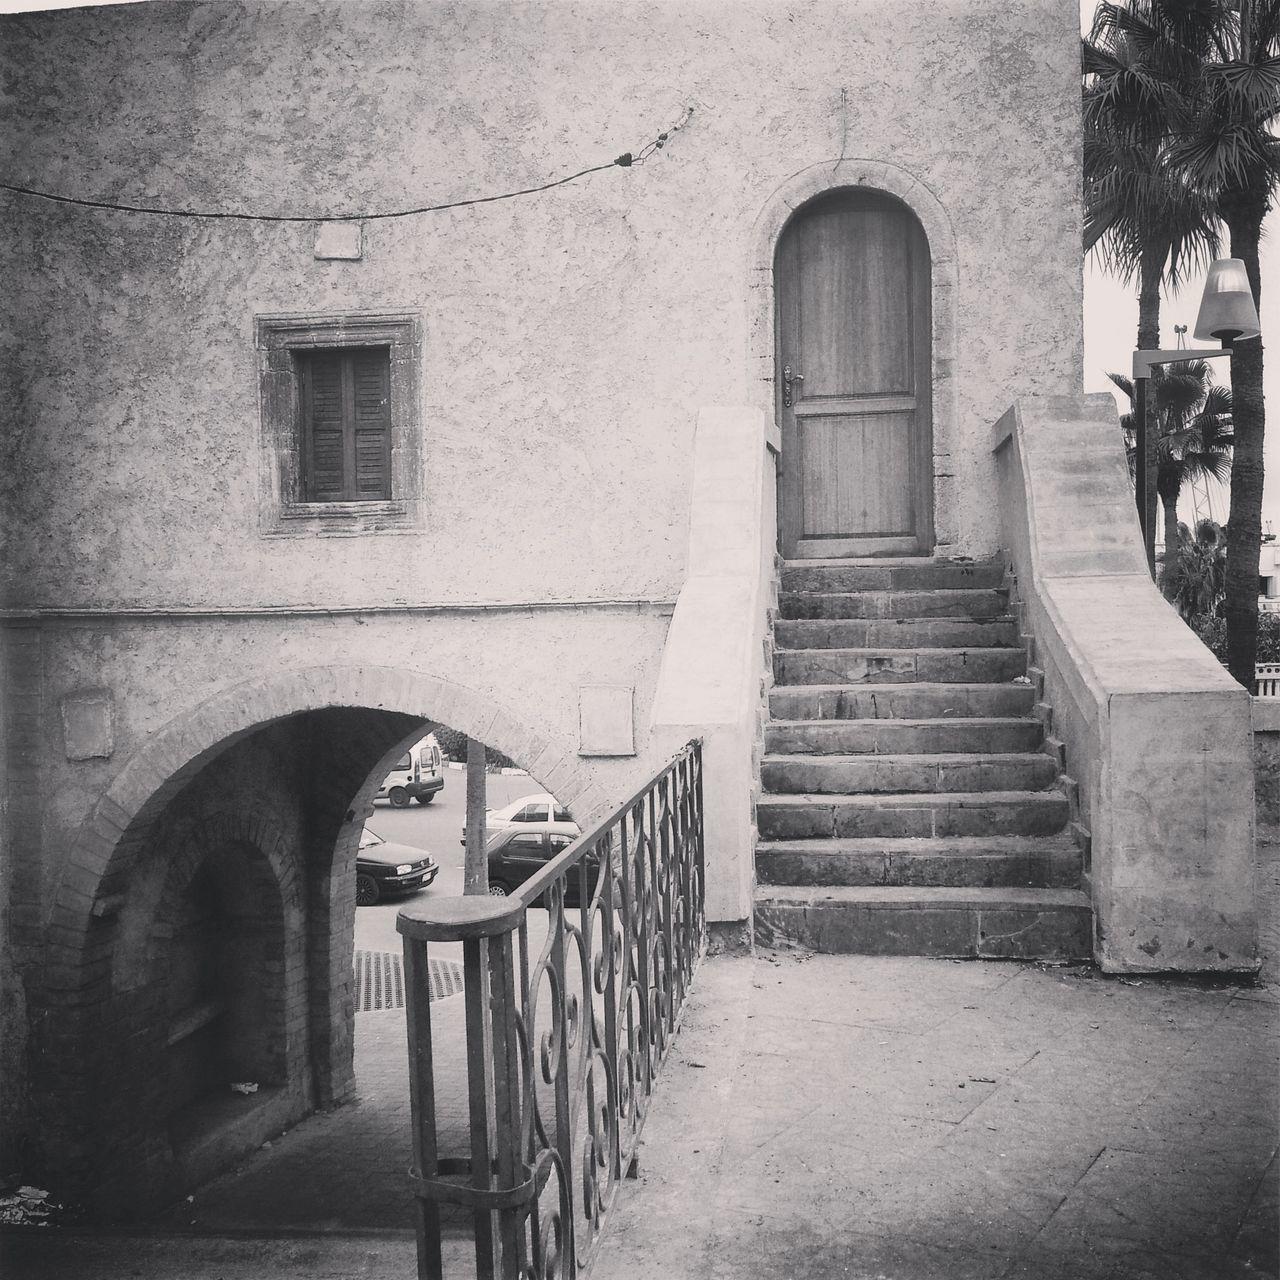 steps, architecture, railing, built structure, building exterior, window, steps and staircases, staircase, entrance, outdoors, facade, arch, stairs, day, the way forward, history, outside, balustrade, leading, stone material, architectural column, railings